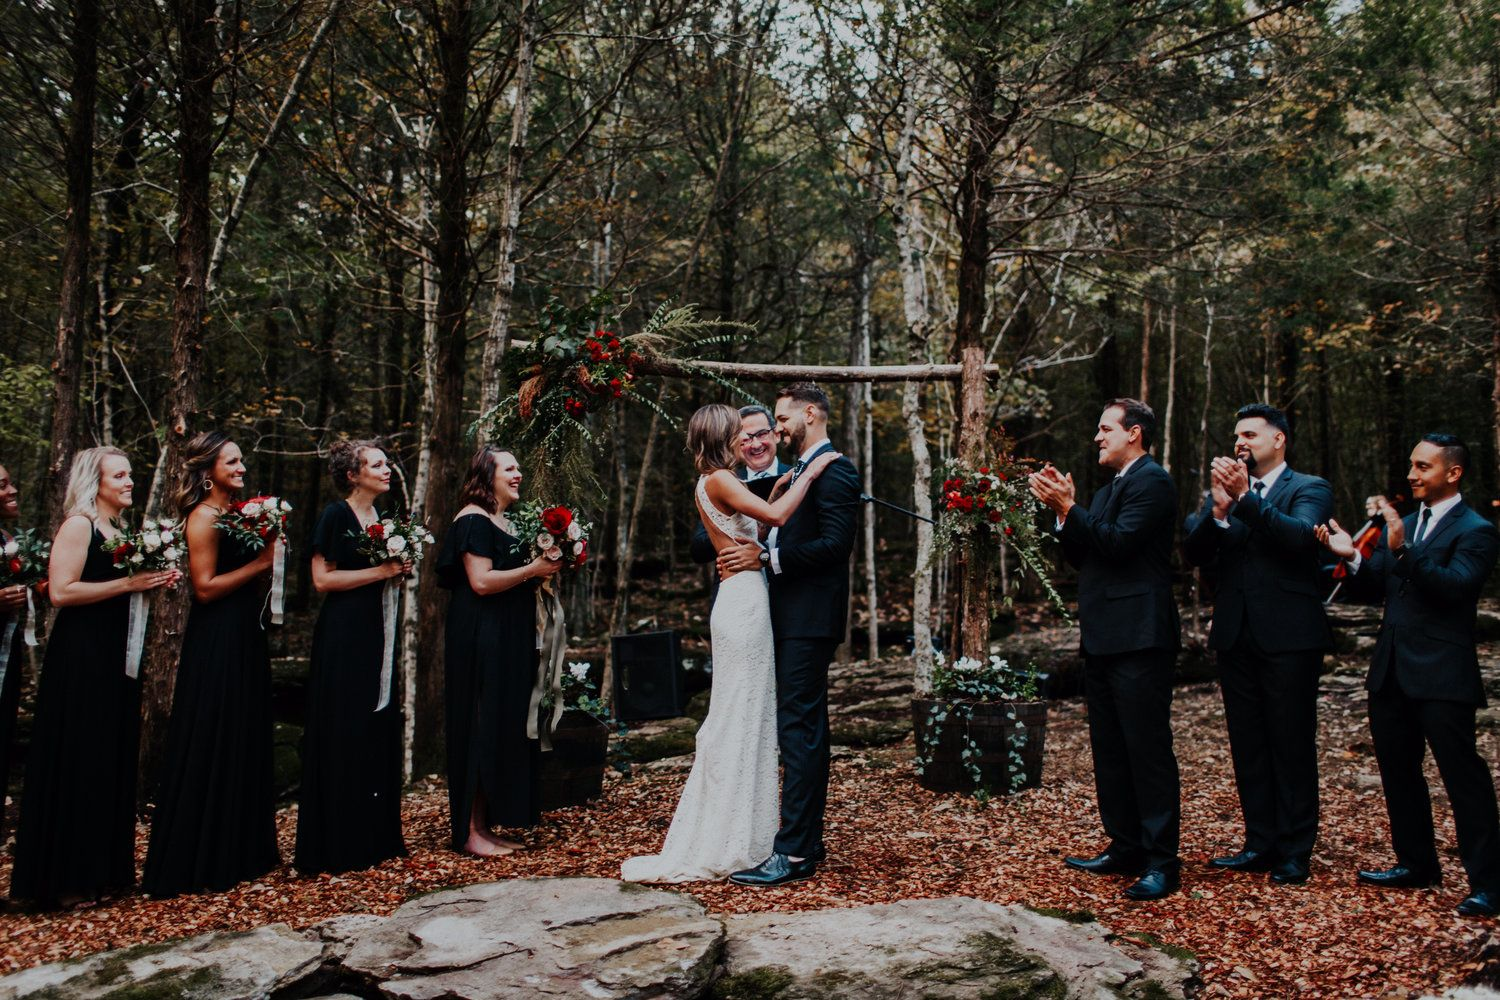 Spring, Summer or Fall, a wedding in the forest is a treat ...